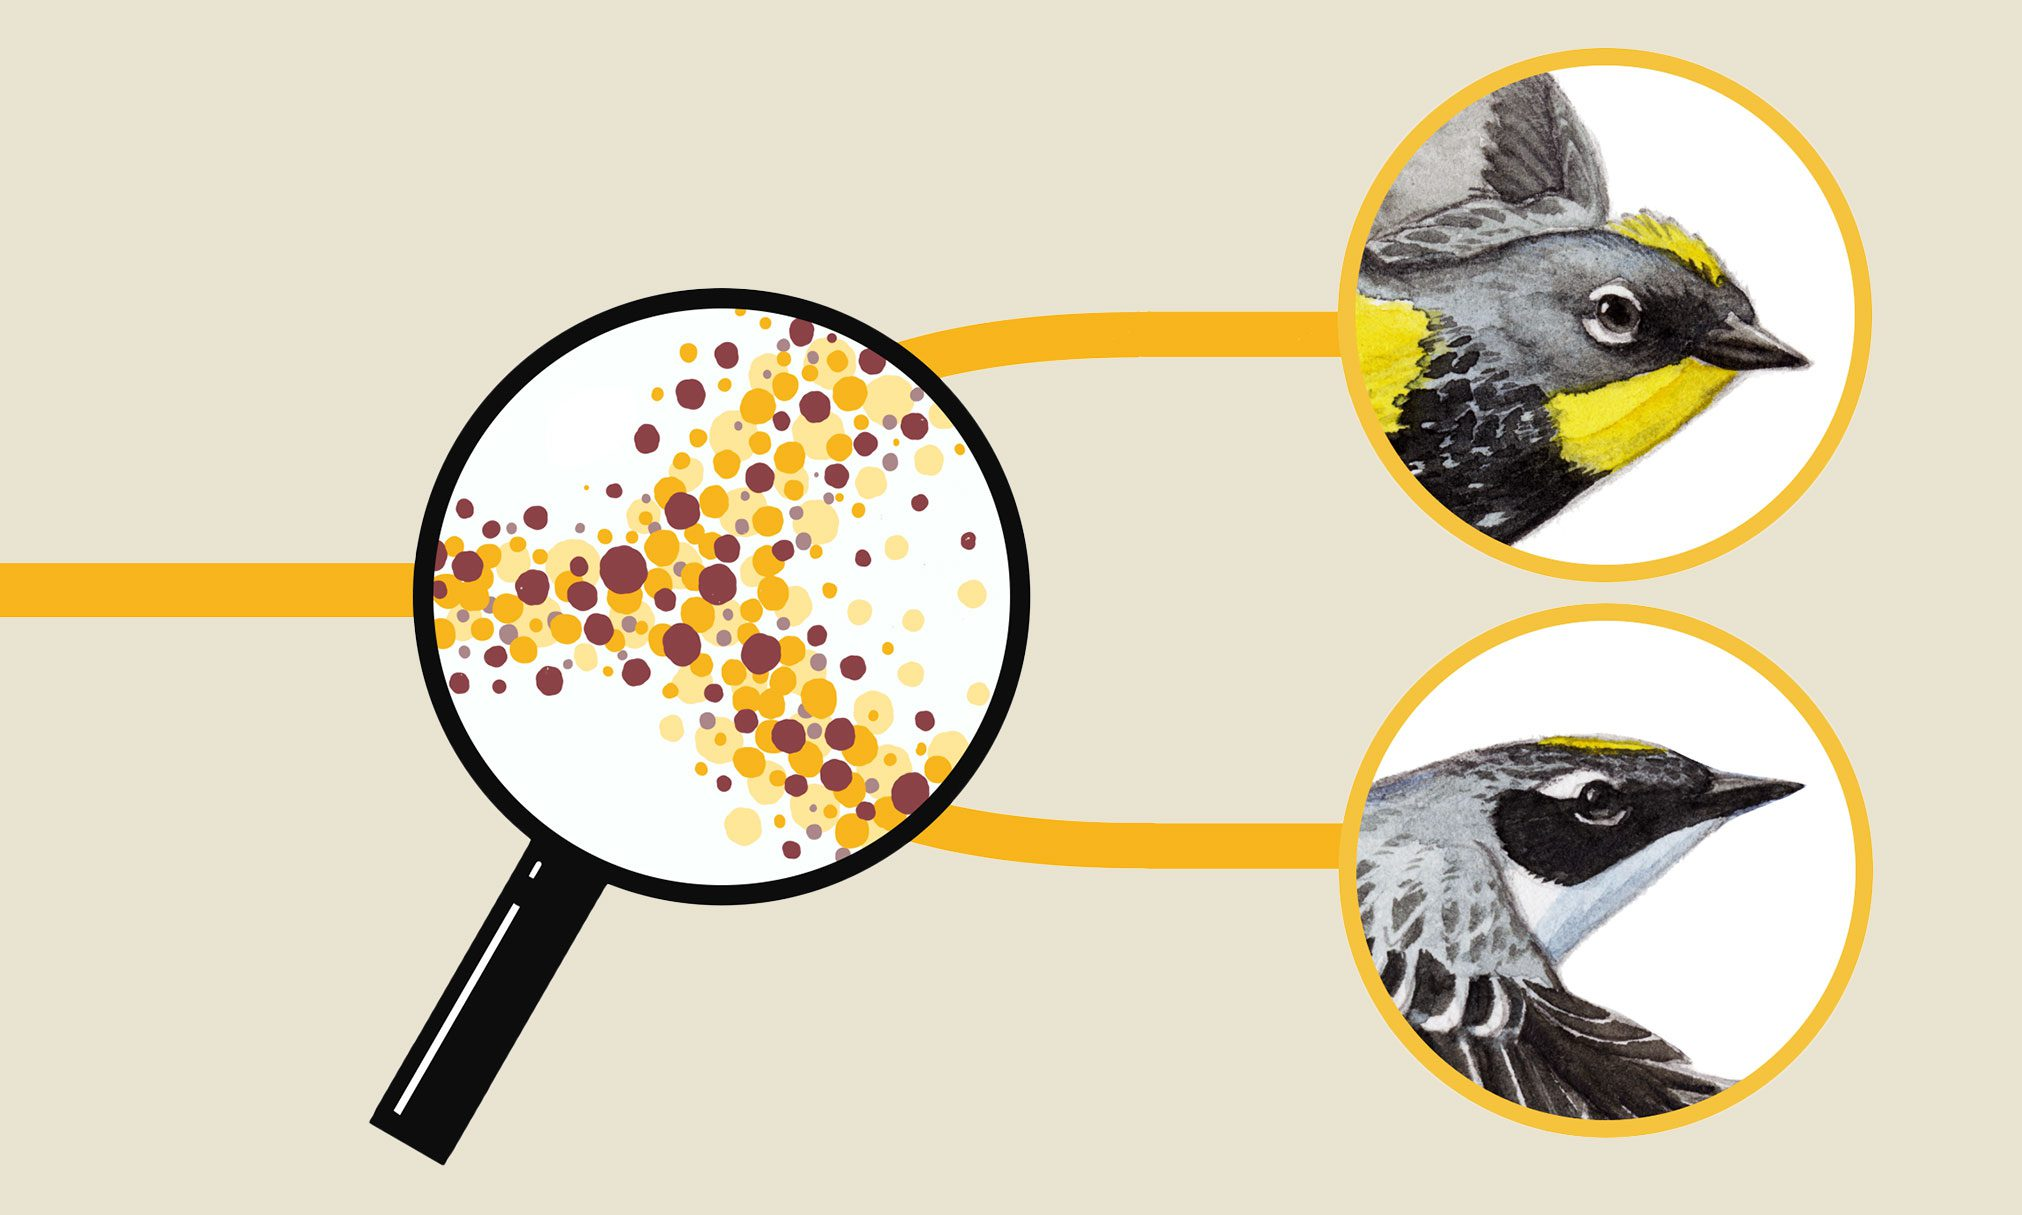 Speciation in Action, Illustration by Virginia Greene, Bartels Science Illustration Intern